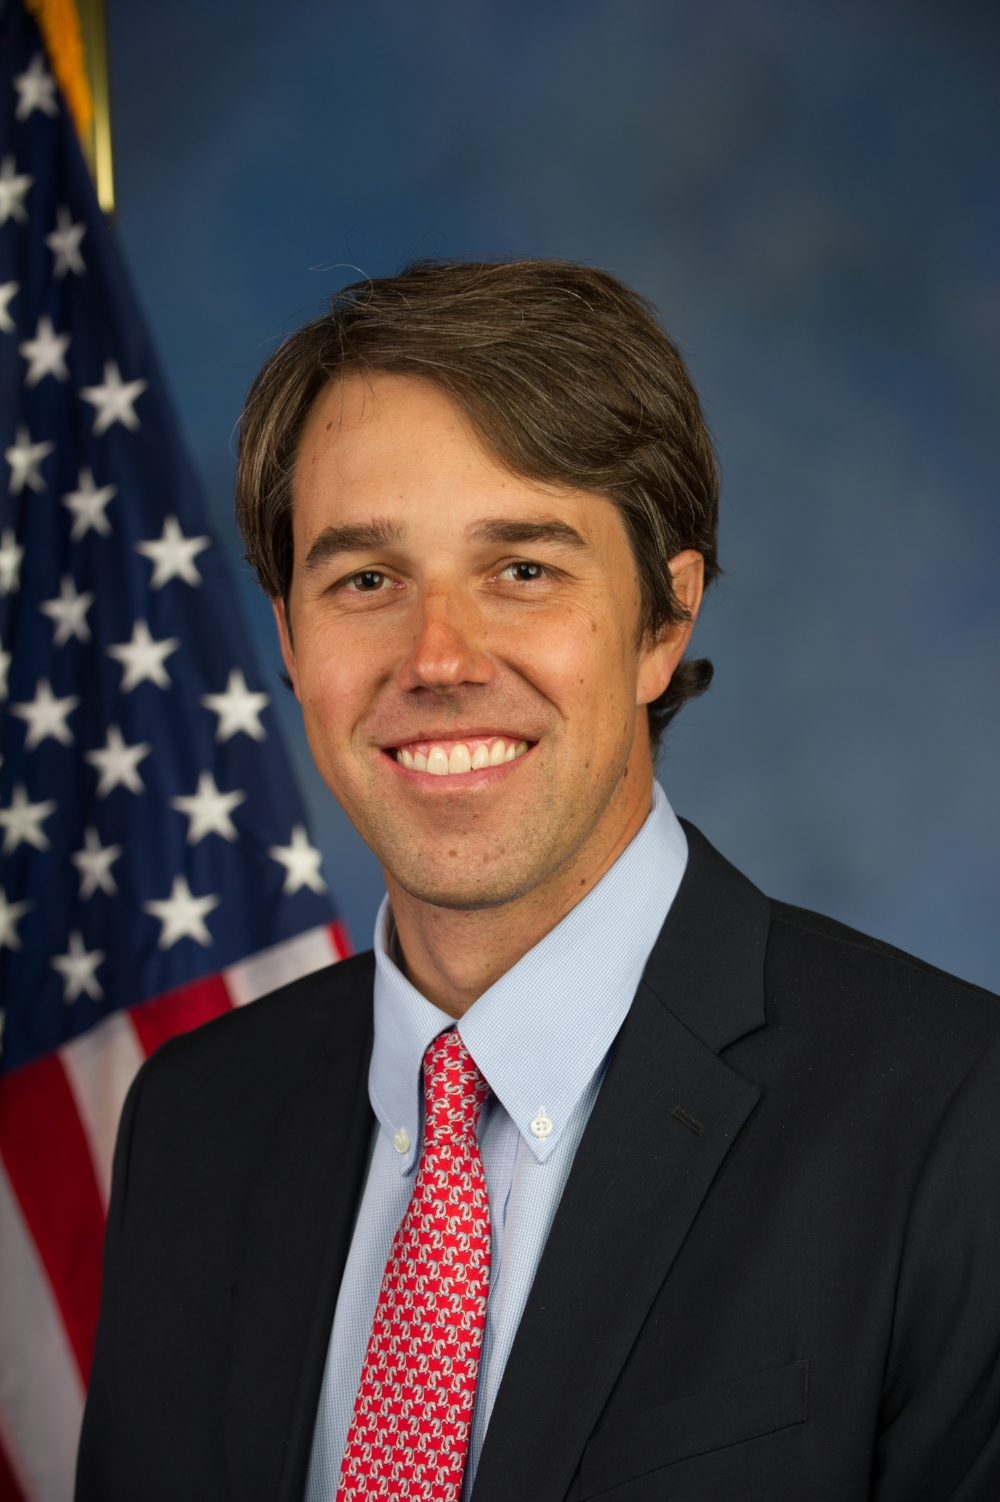 Beto O'Rourke is challenging Ted Cruz for a Texas Senate seat ( source )